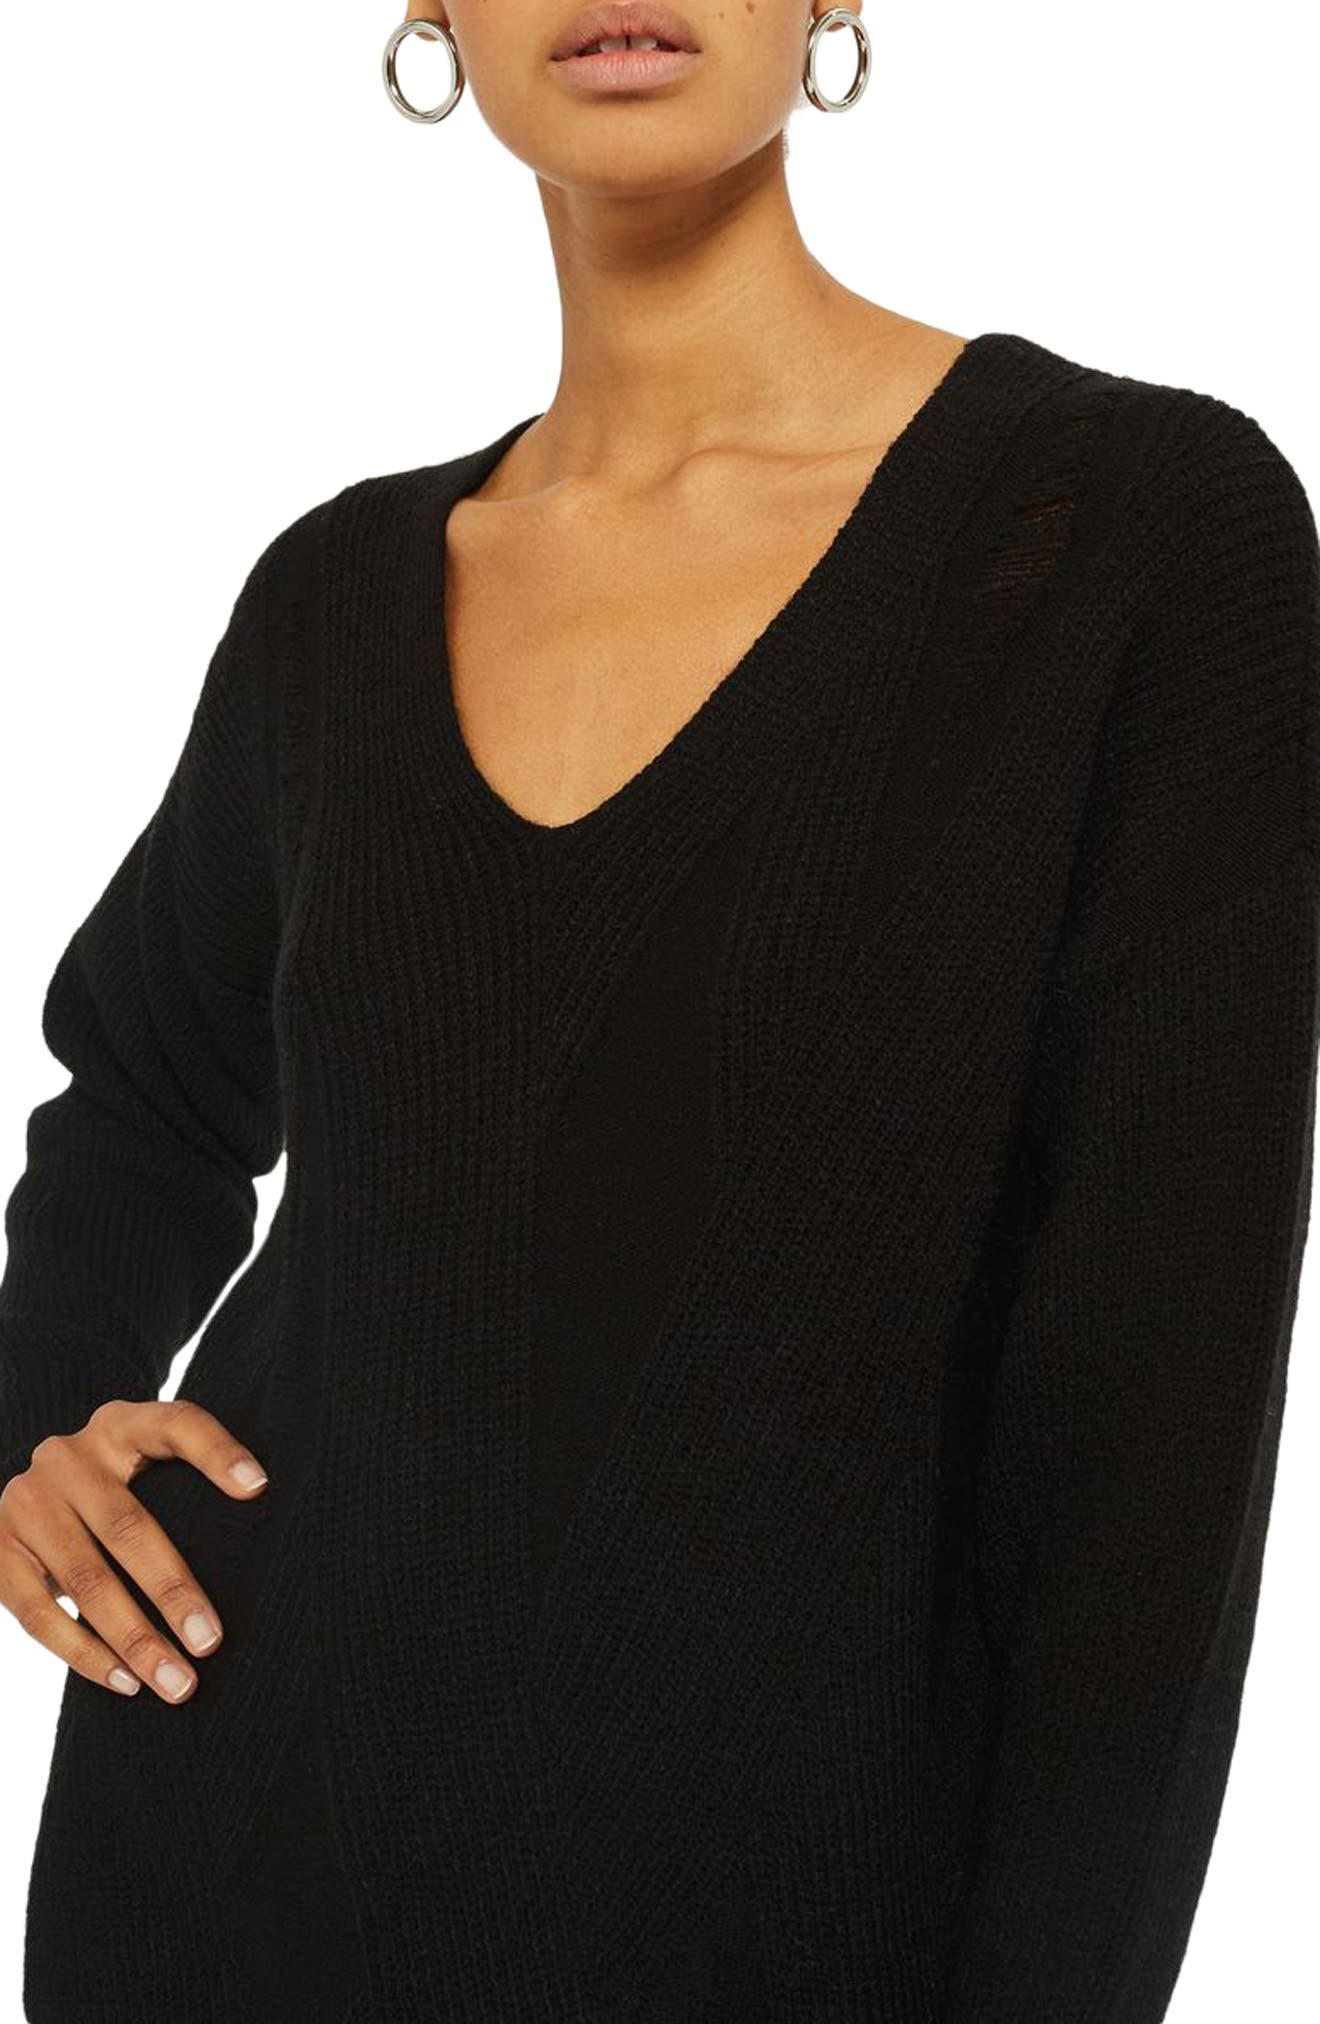 Ladder Stitch Sweater,                             Alternate thumbnail 3, color,                             001